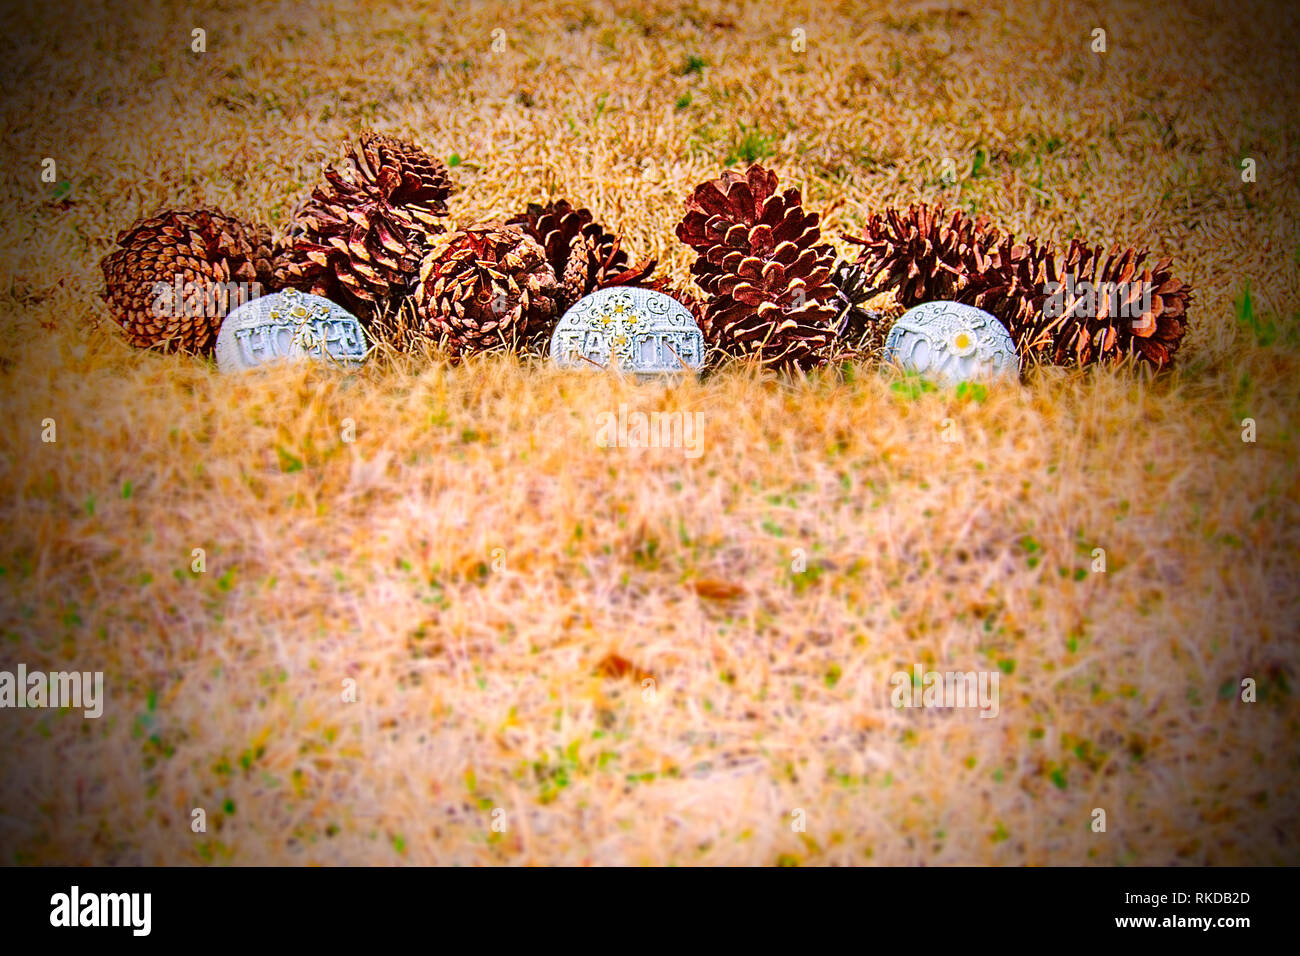 Close-up of several pinecones on the ground with three handcrafted stones that have symbols on them and the words hope, faith and love. - Stock Image